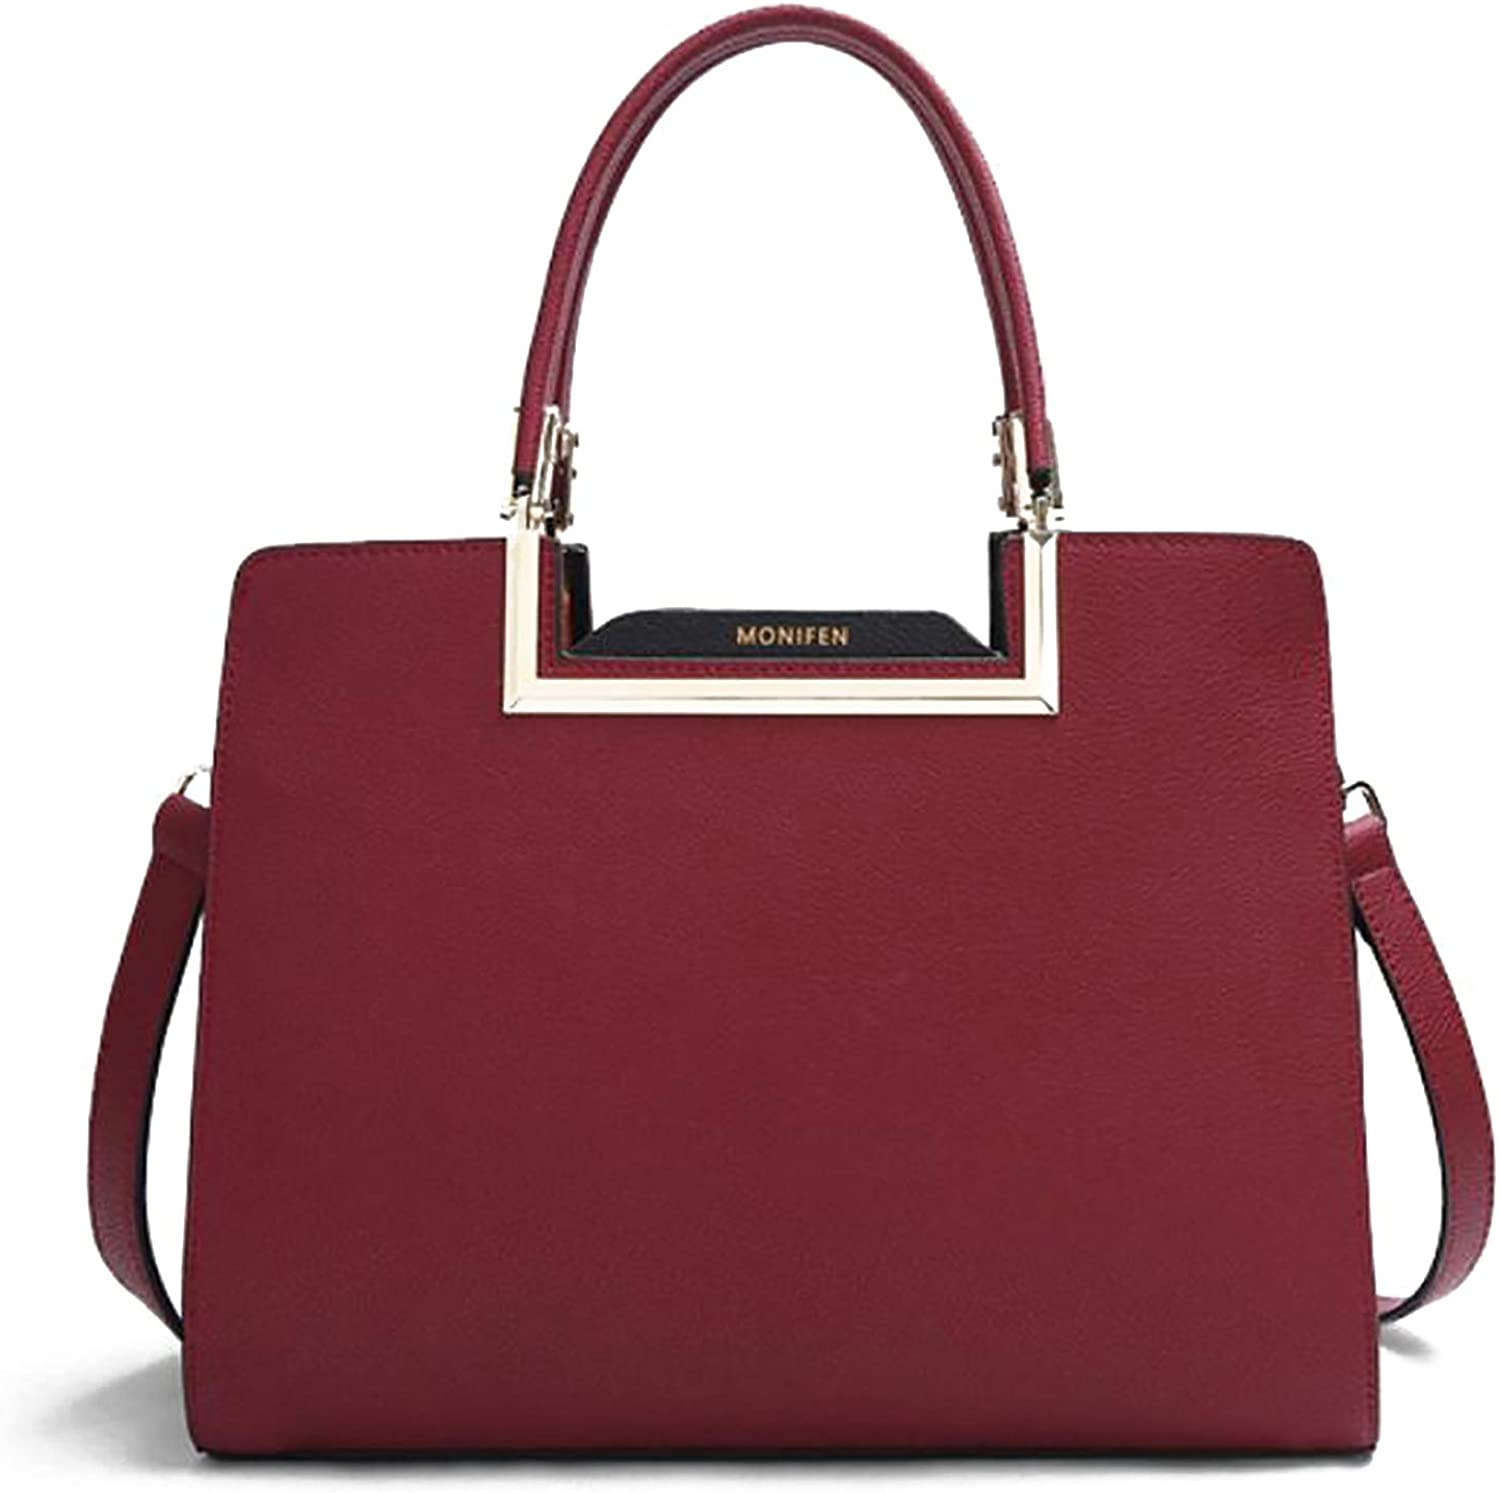 Women's leather handbags San Francisco Mall shoulder handles bags Safety and trust top